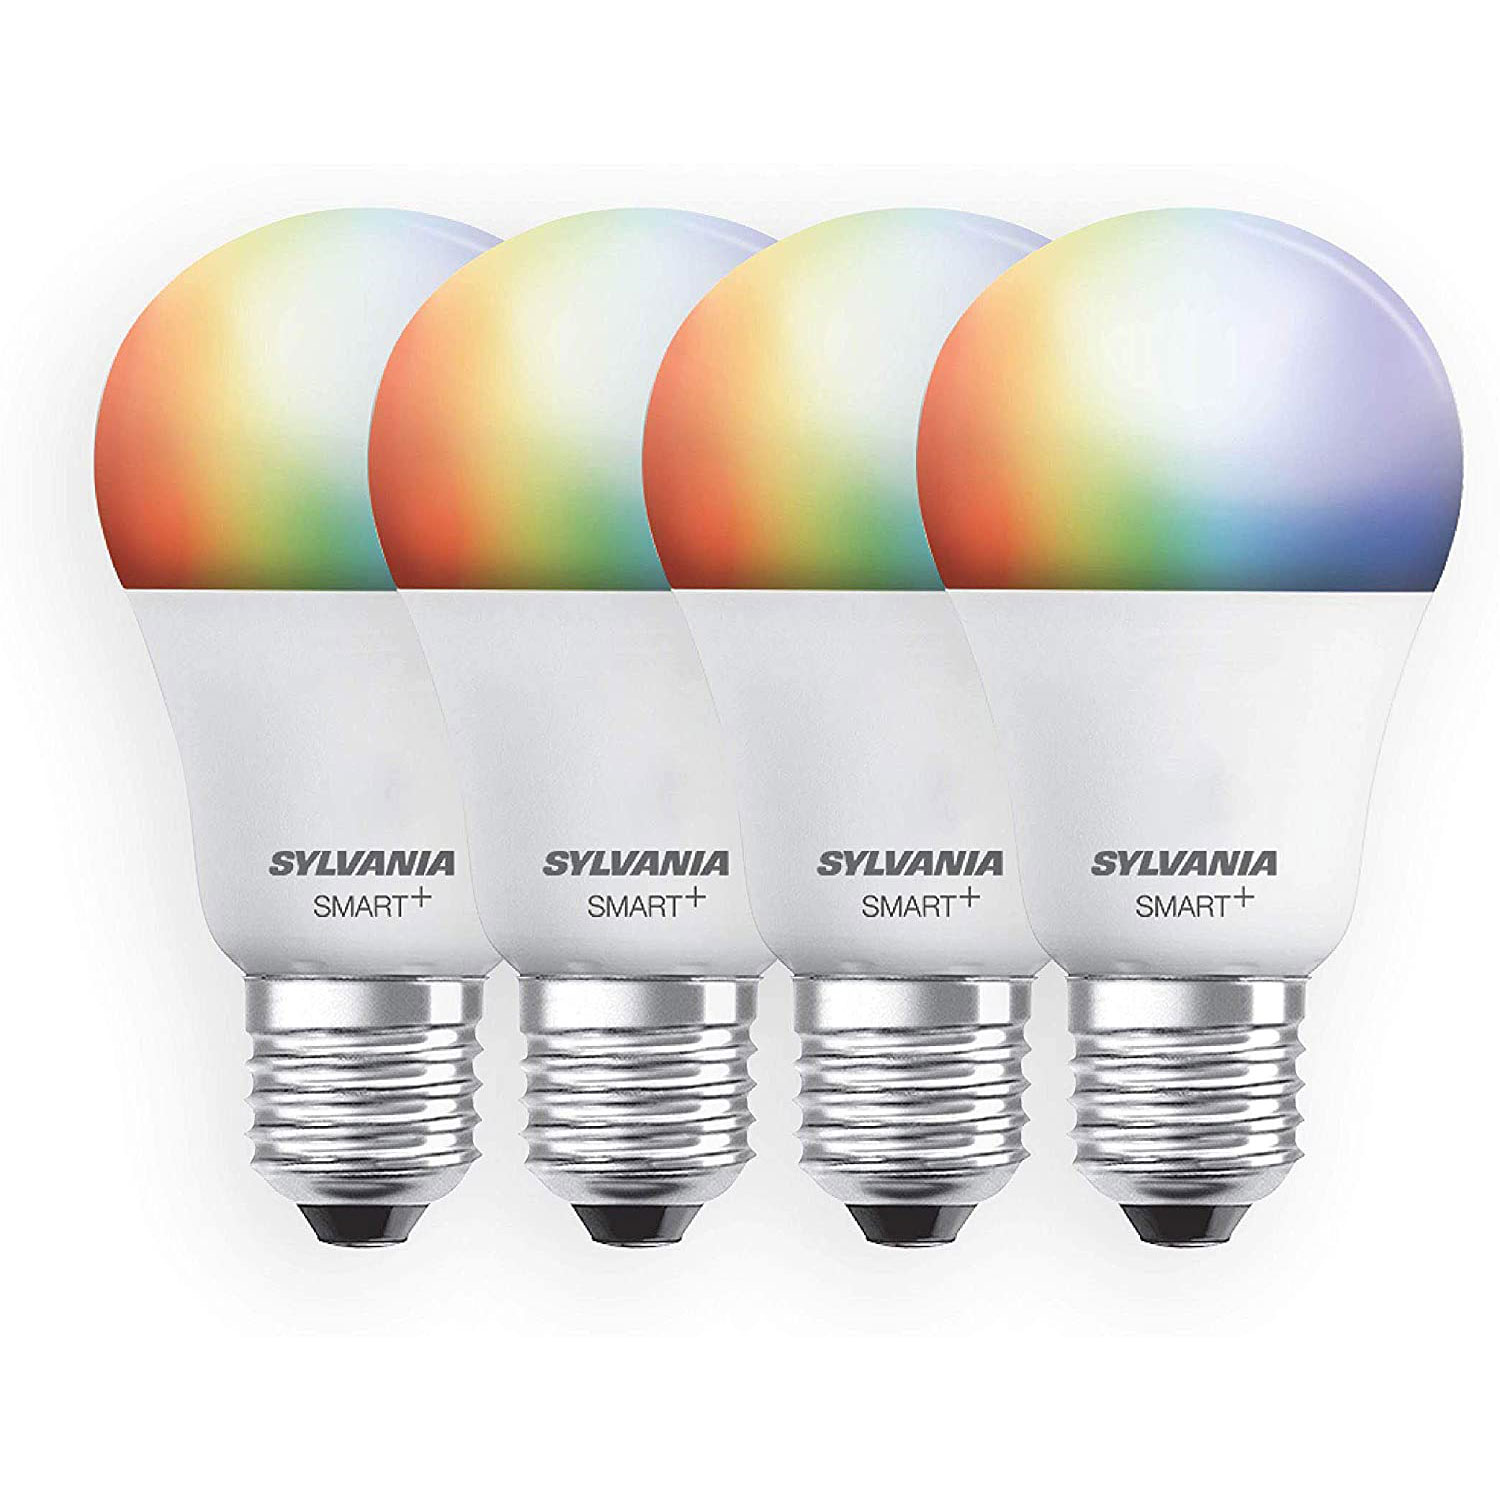 sylvania smart wifi full color dimmable led light bulb alexa google